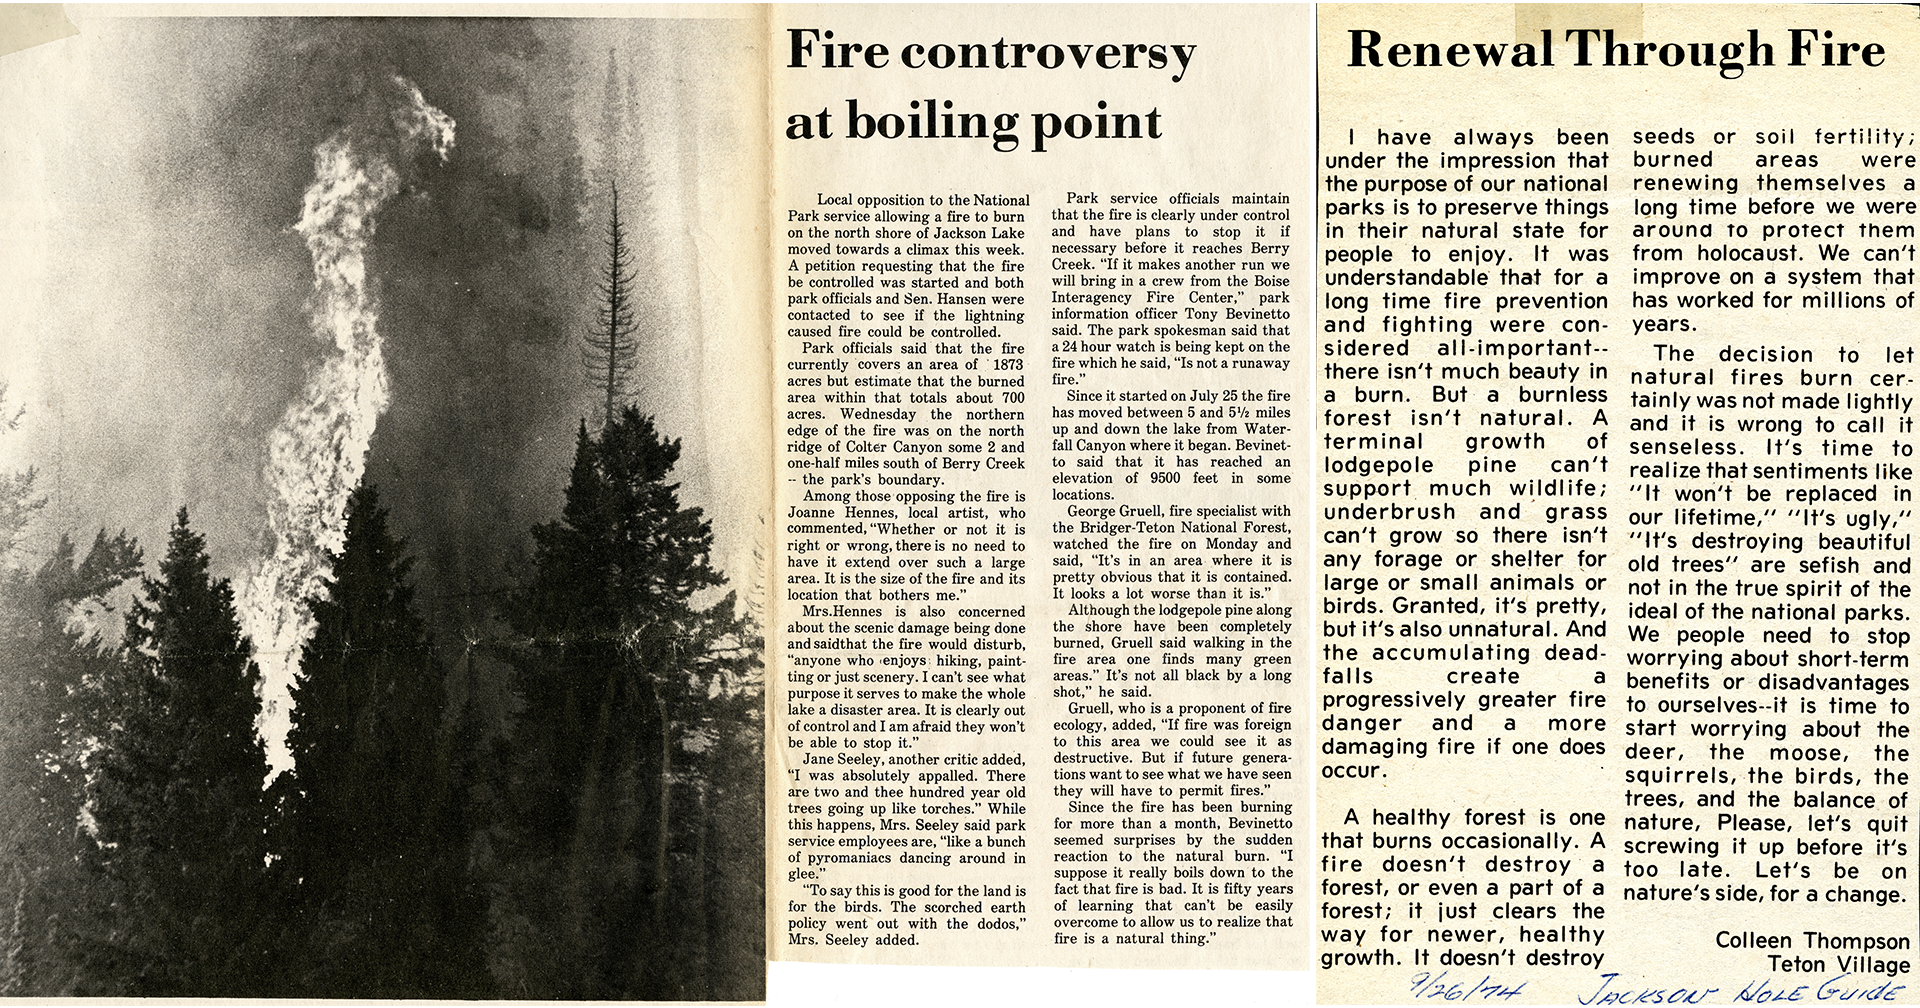 Two newspaper articles discuss the Waterfalls Canyon Fire, one positive and one negative.